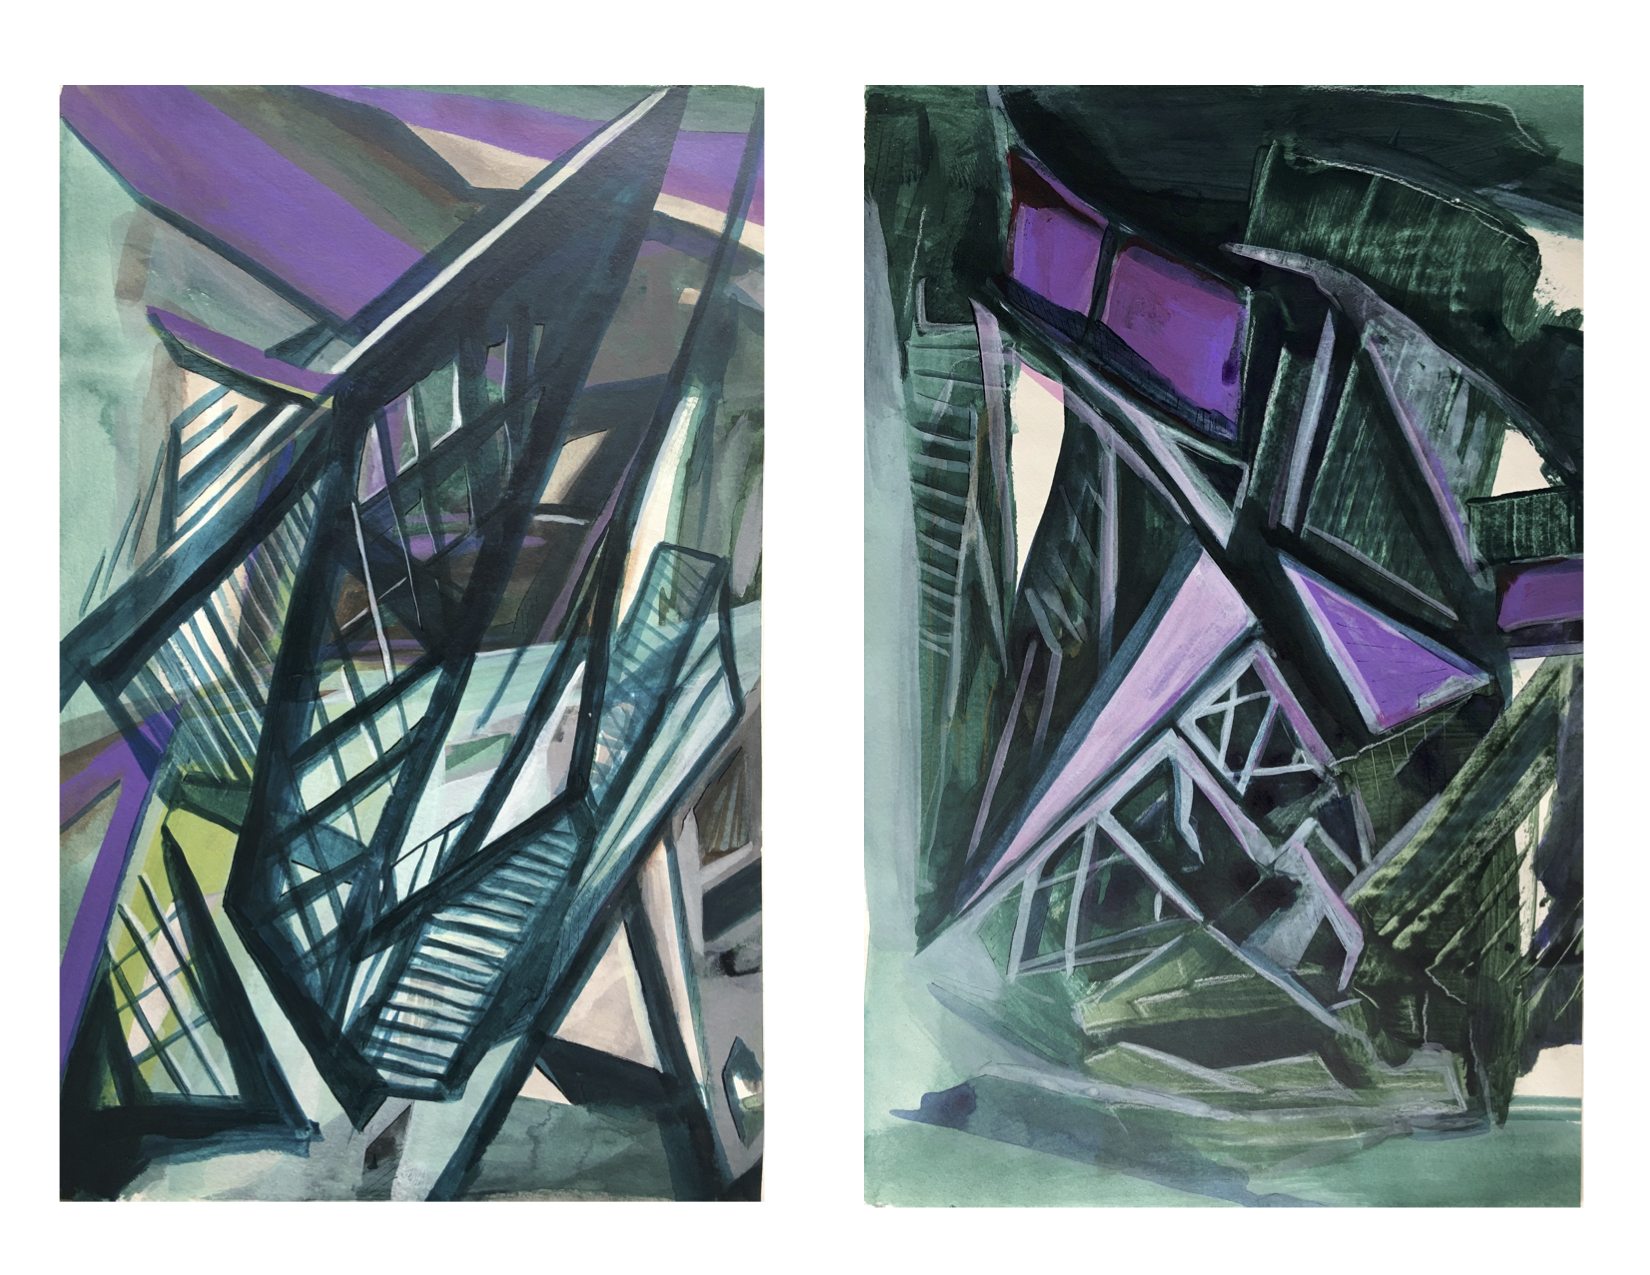 Deconstructivism, acrylic on paper, 19x12.5 inches each, 2020